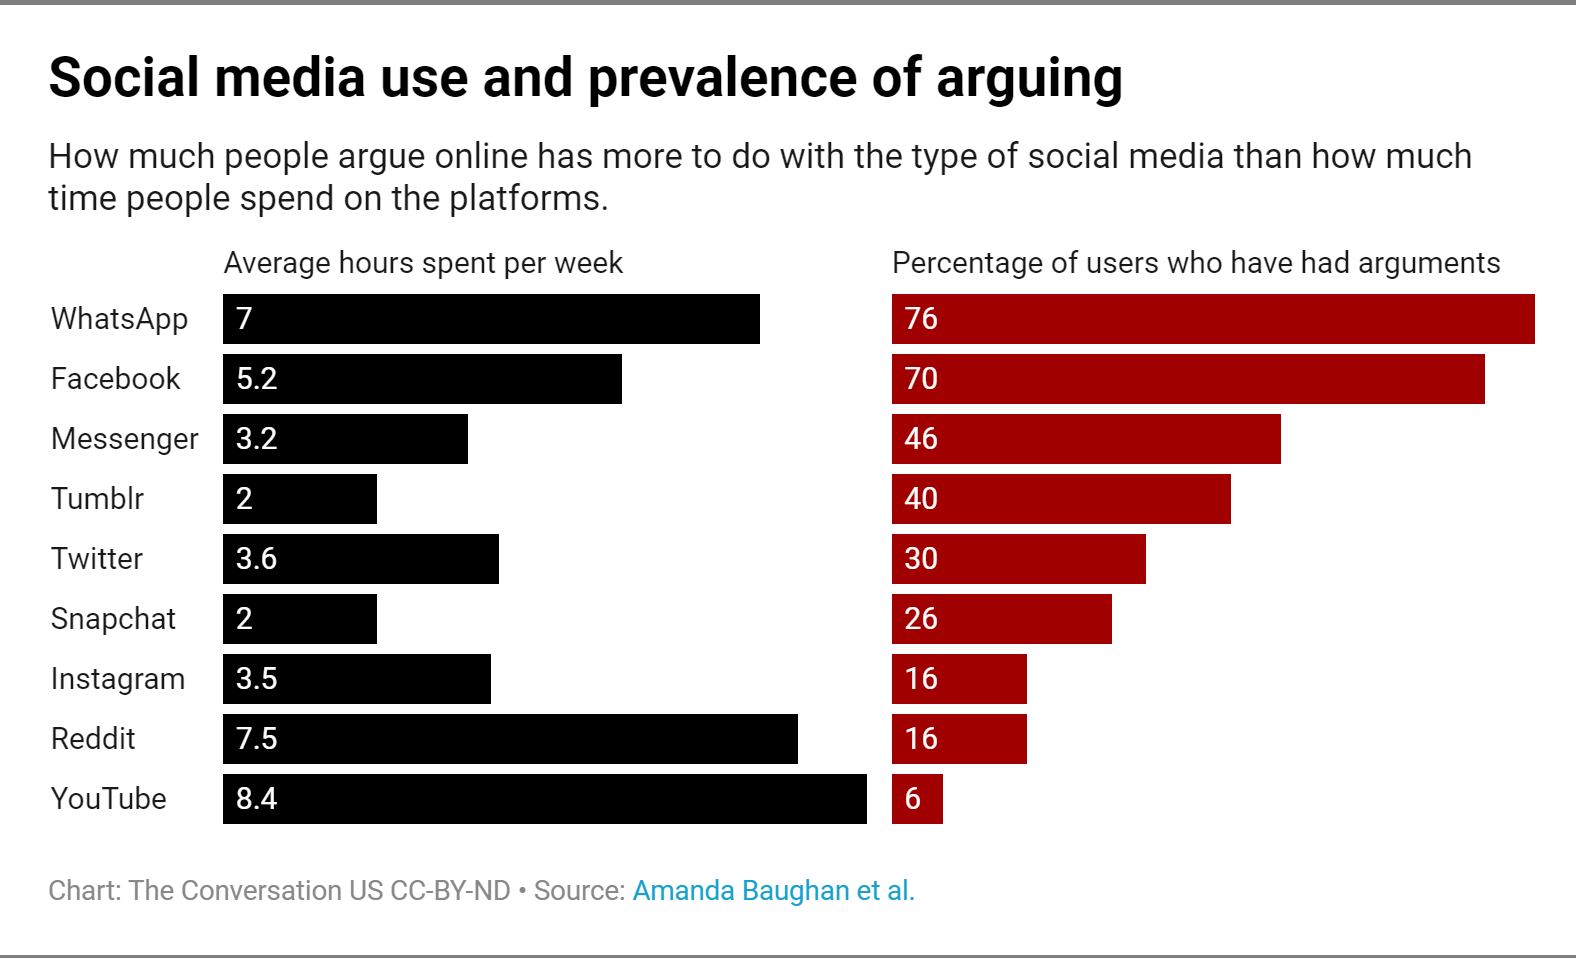 Social media use and prevalence of arguing